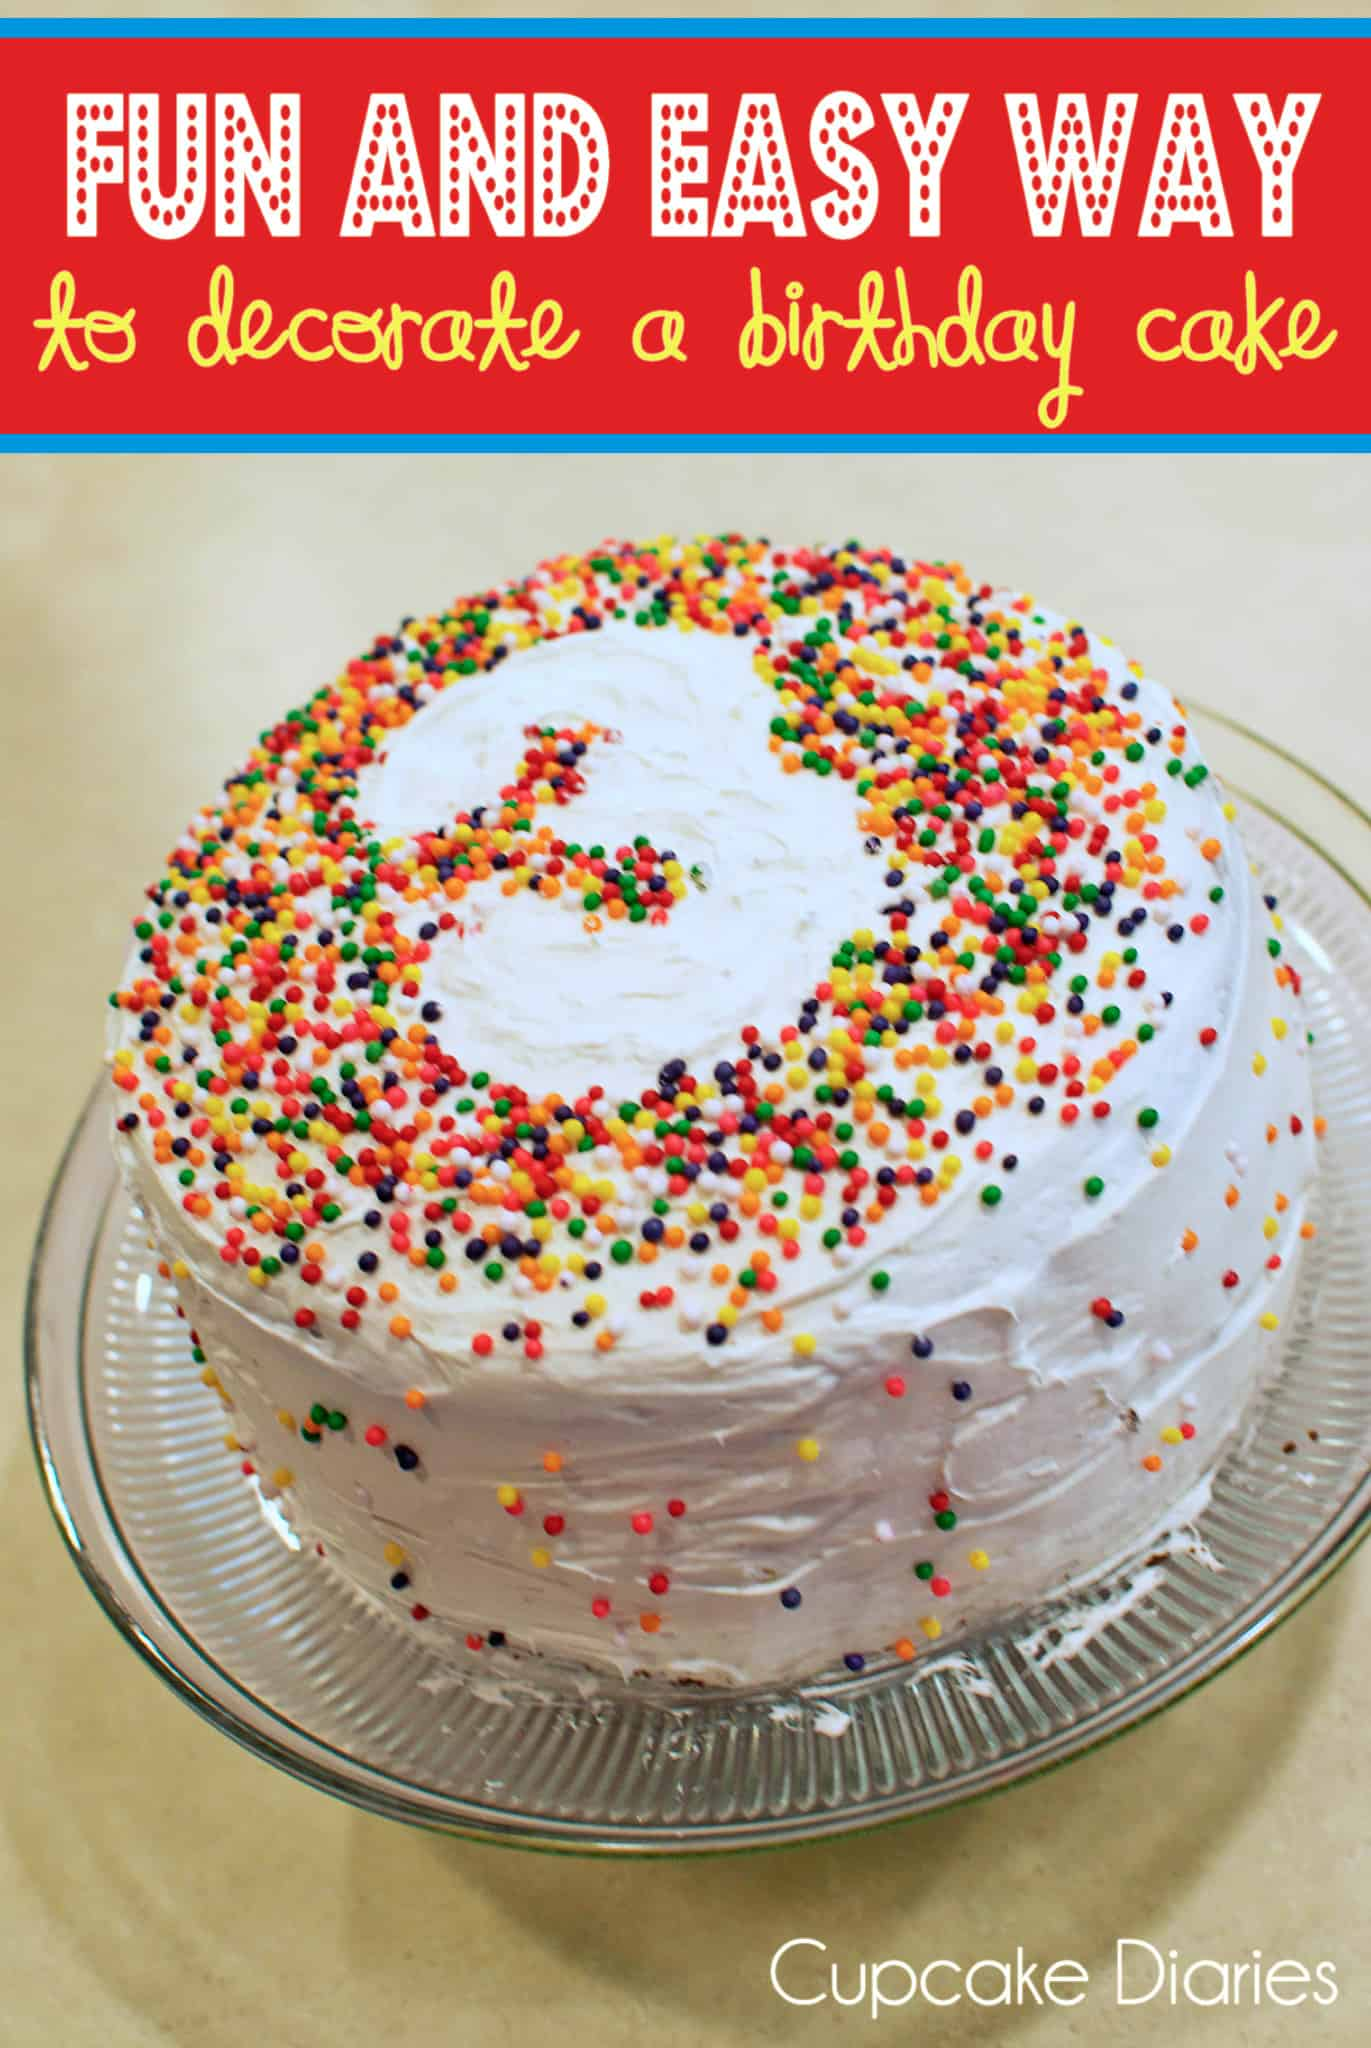 Simple Cake Decorations For Birthdays : Fun and Easy Way to Decorate a Birthday Cake - Cupcake Diaries